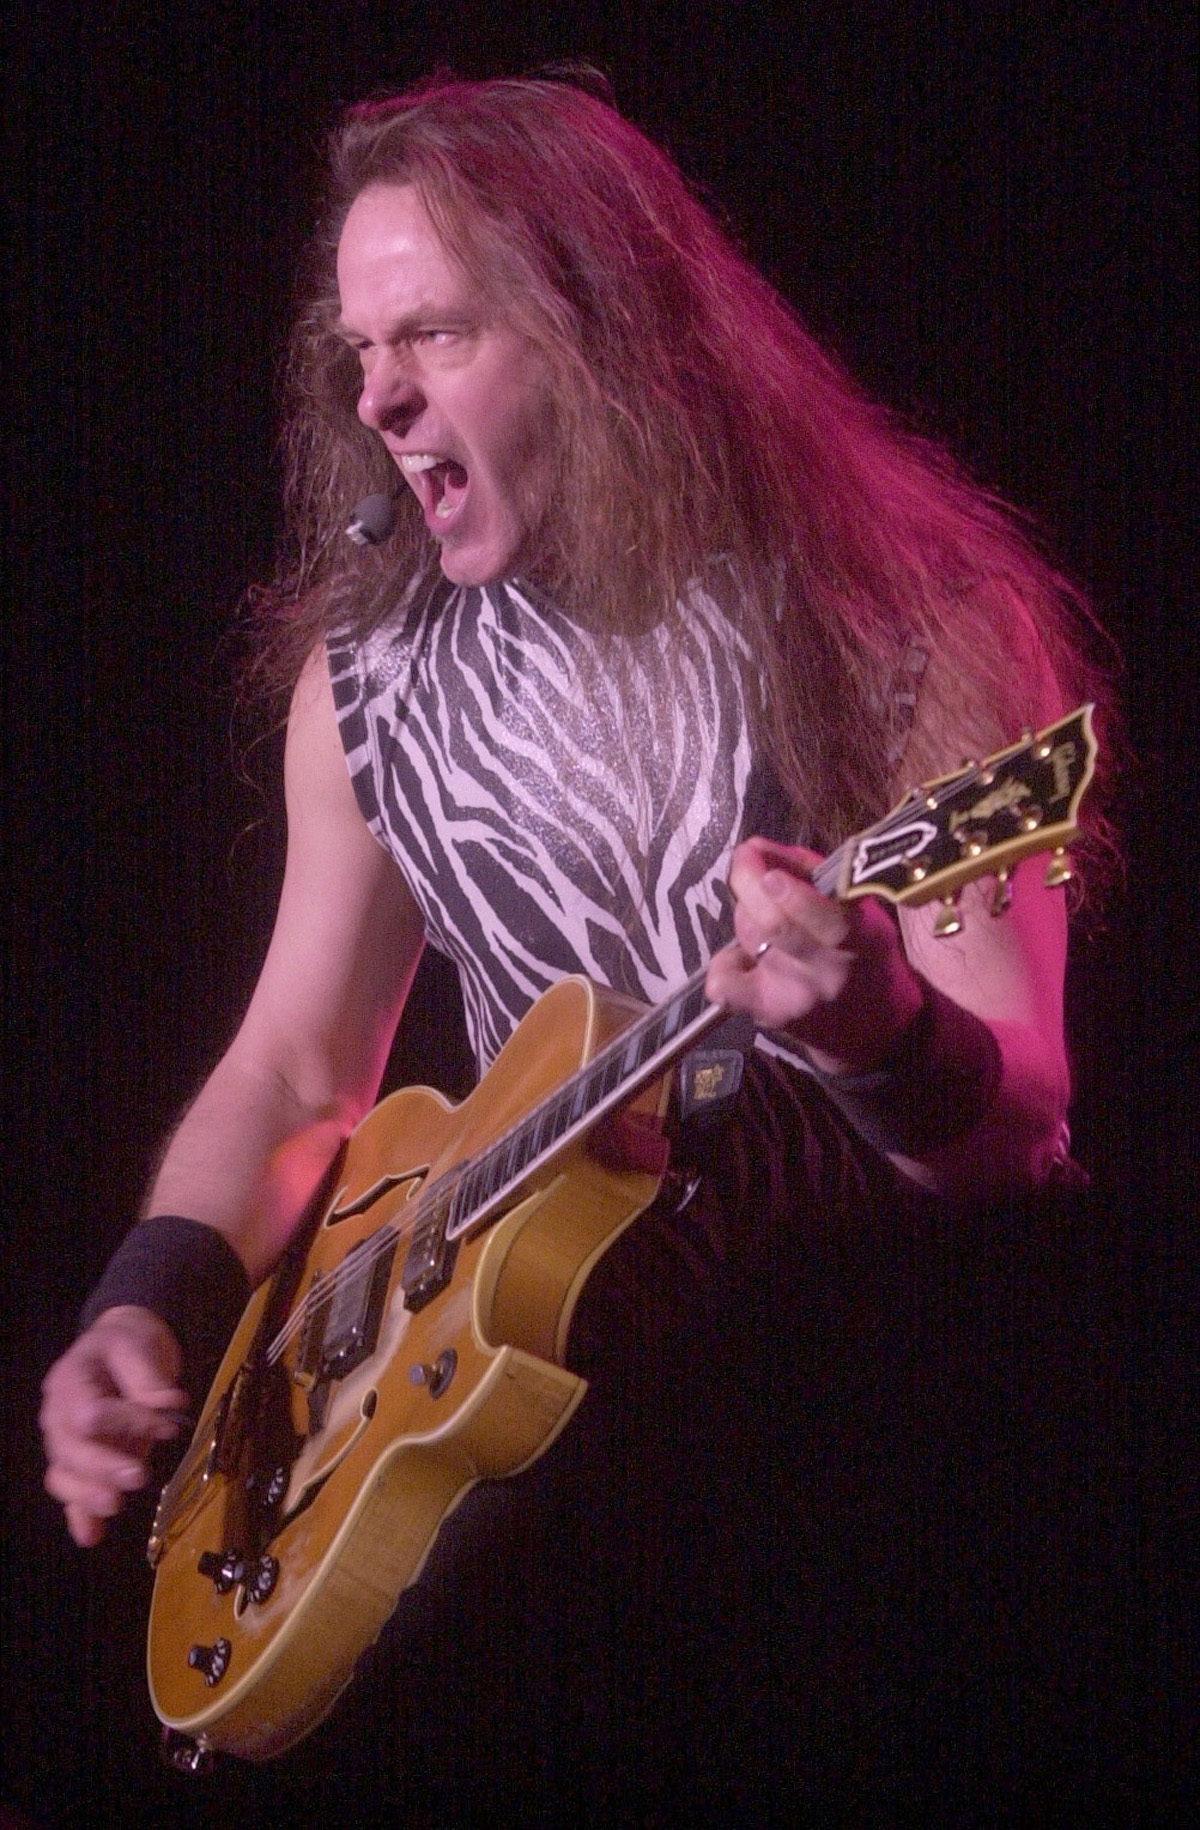 051701 Ted Nugent#1